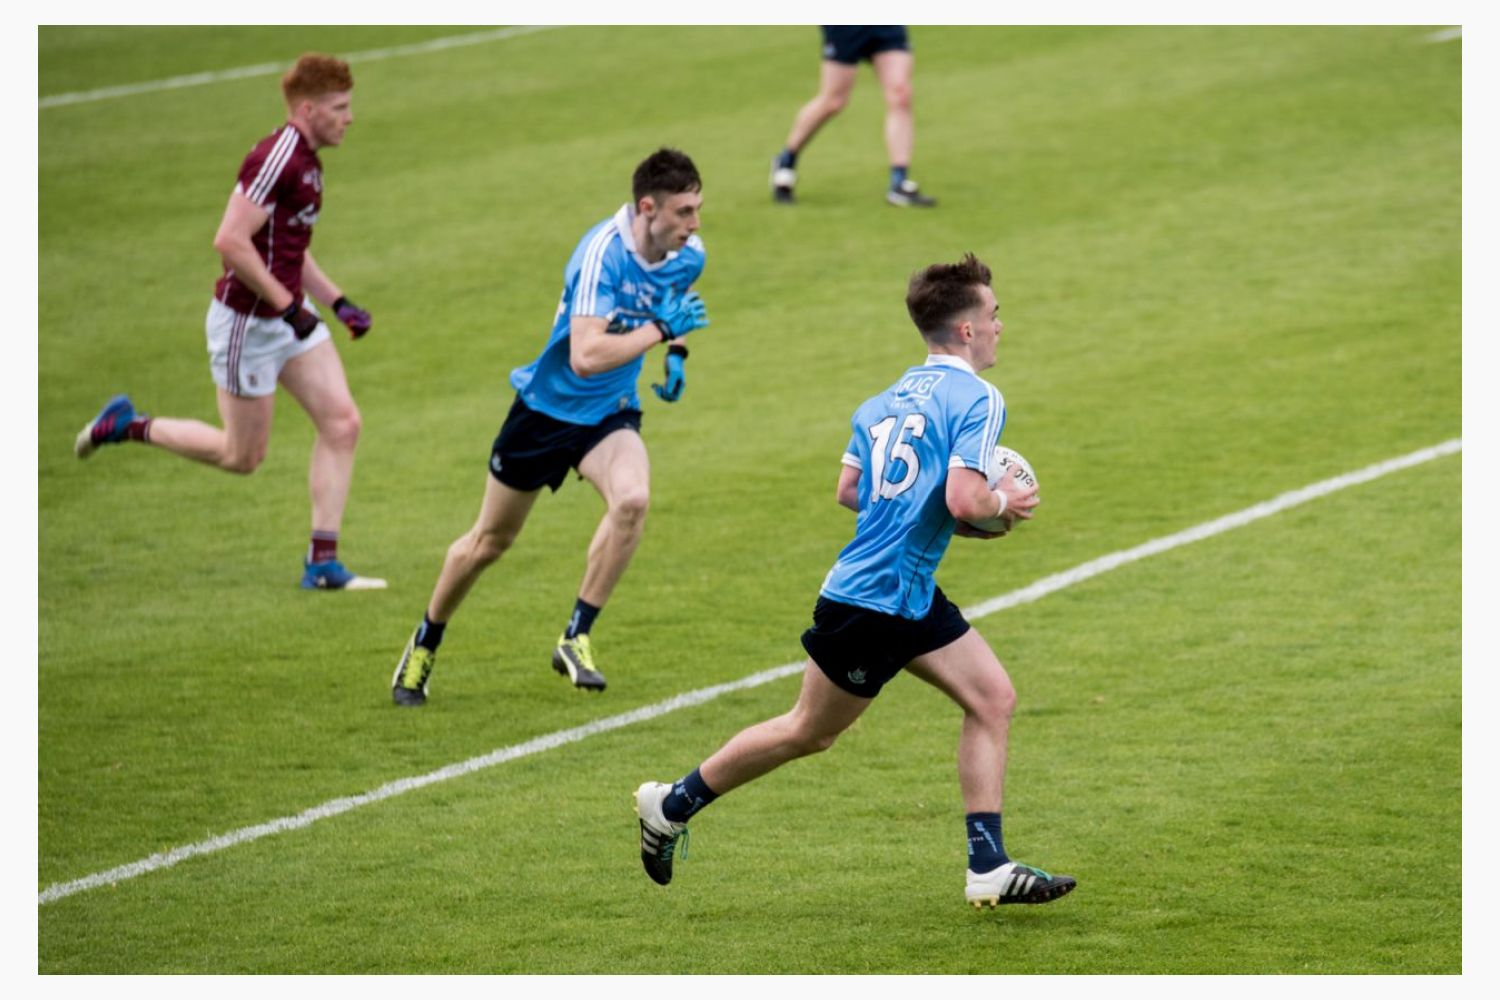 Congratulations to the Dublin U 21 Team - 6 Kilmacud Crokes players